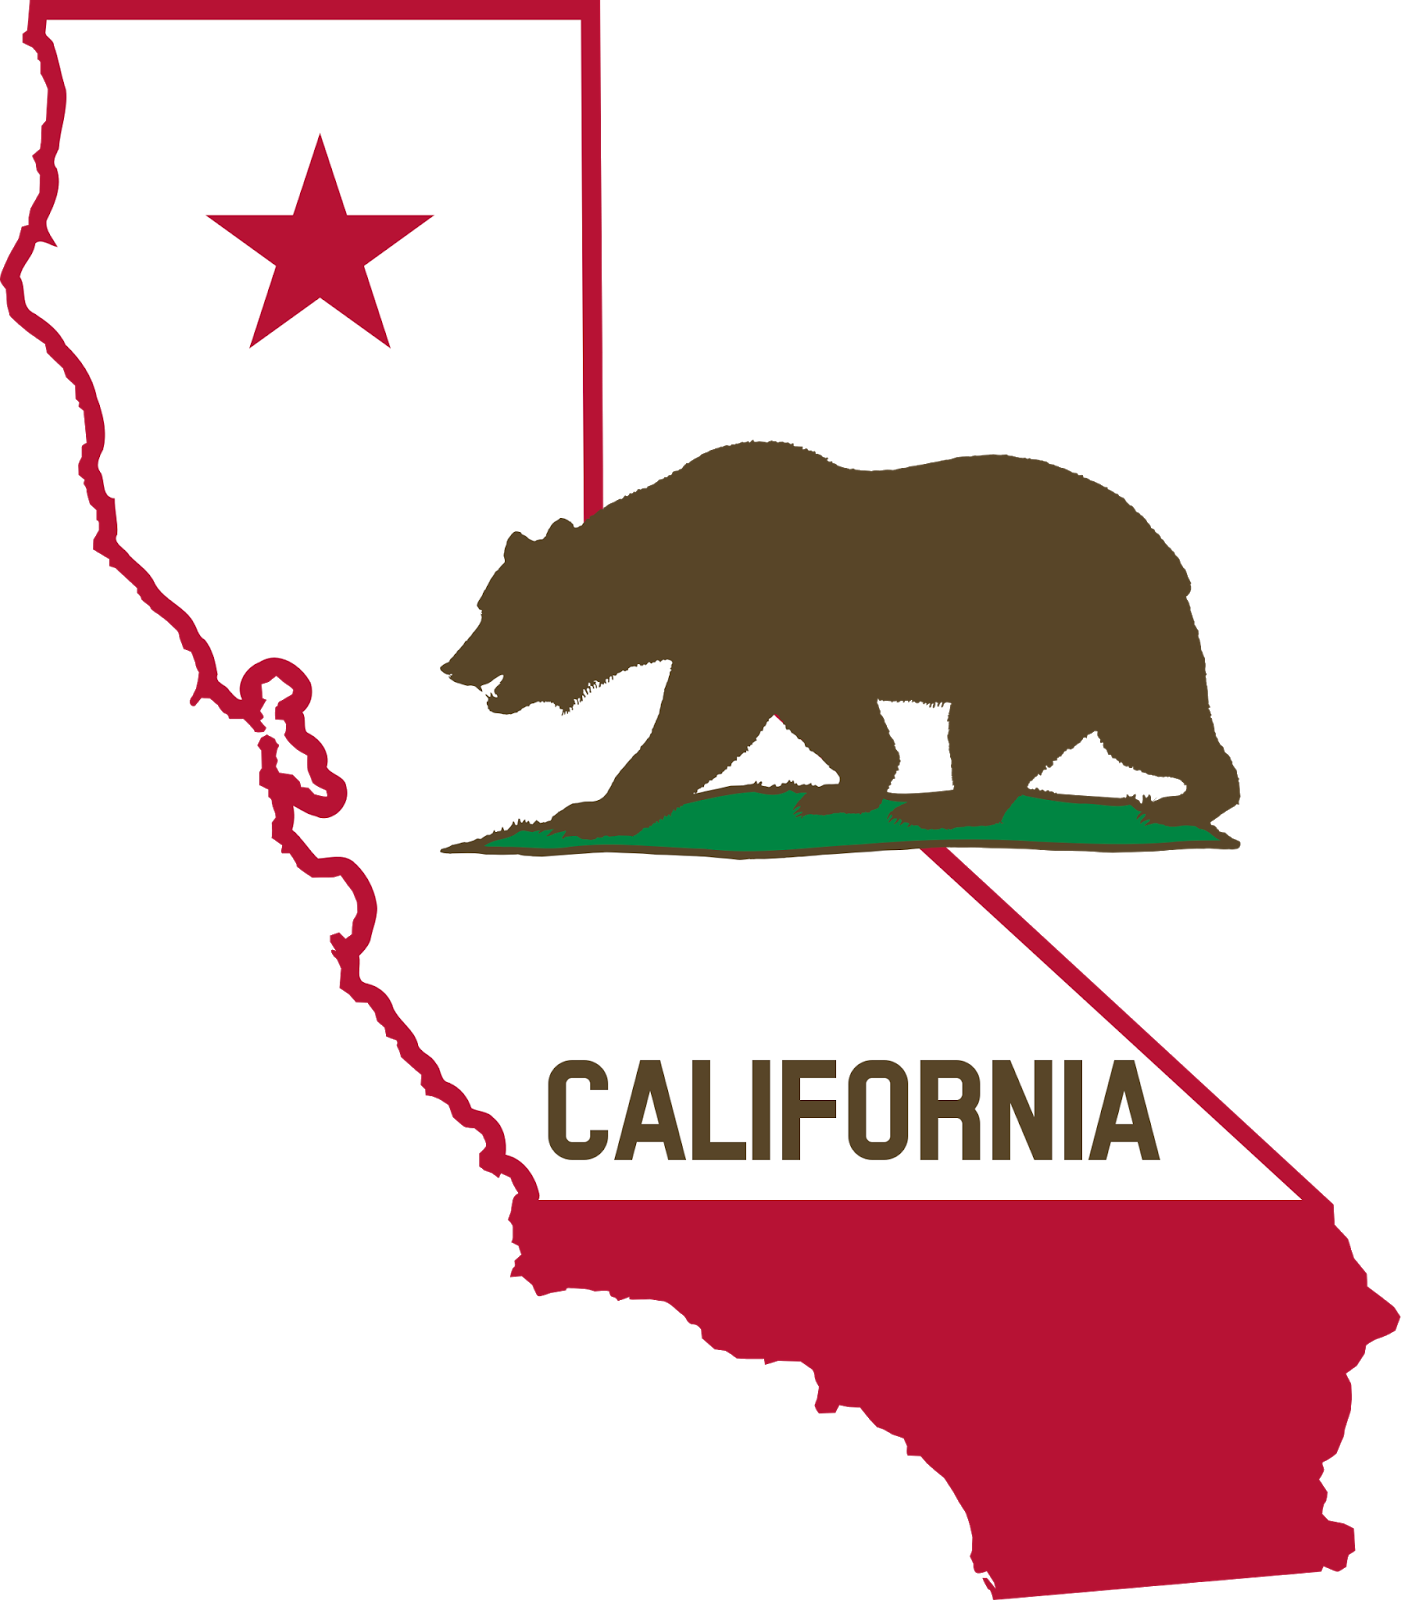 Economics clipart economic analysis. California moving towards surpassing